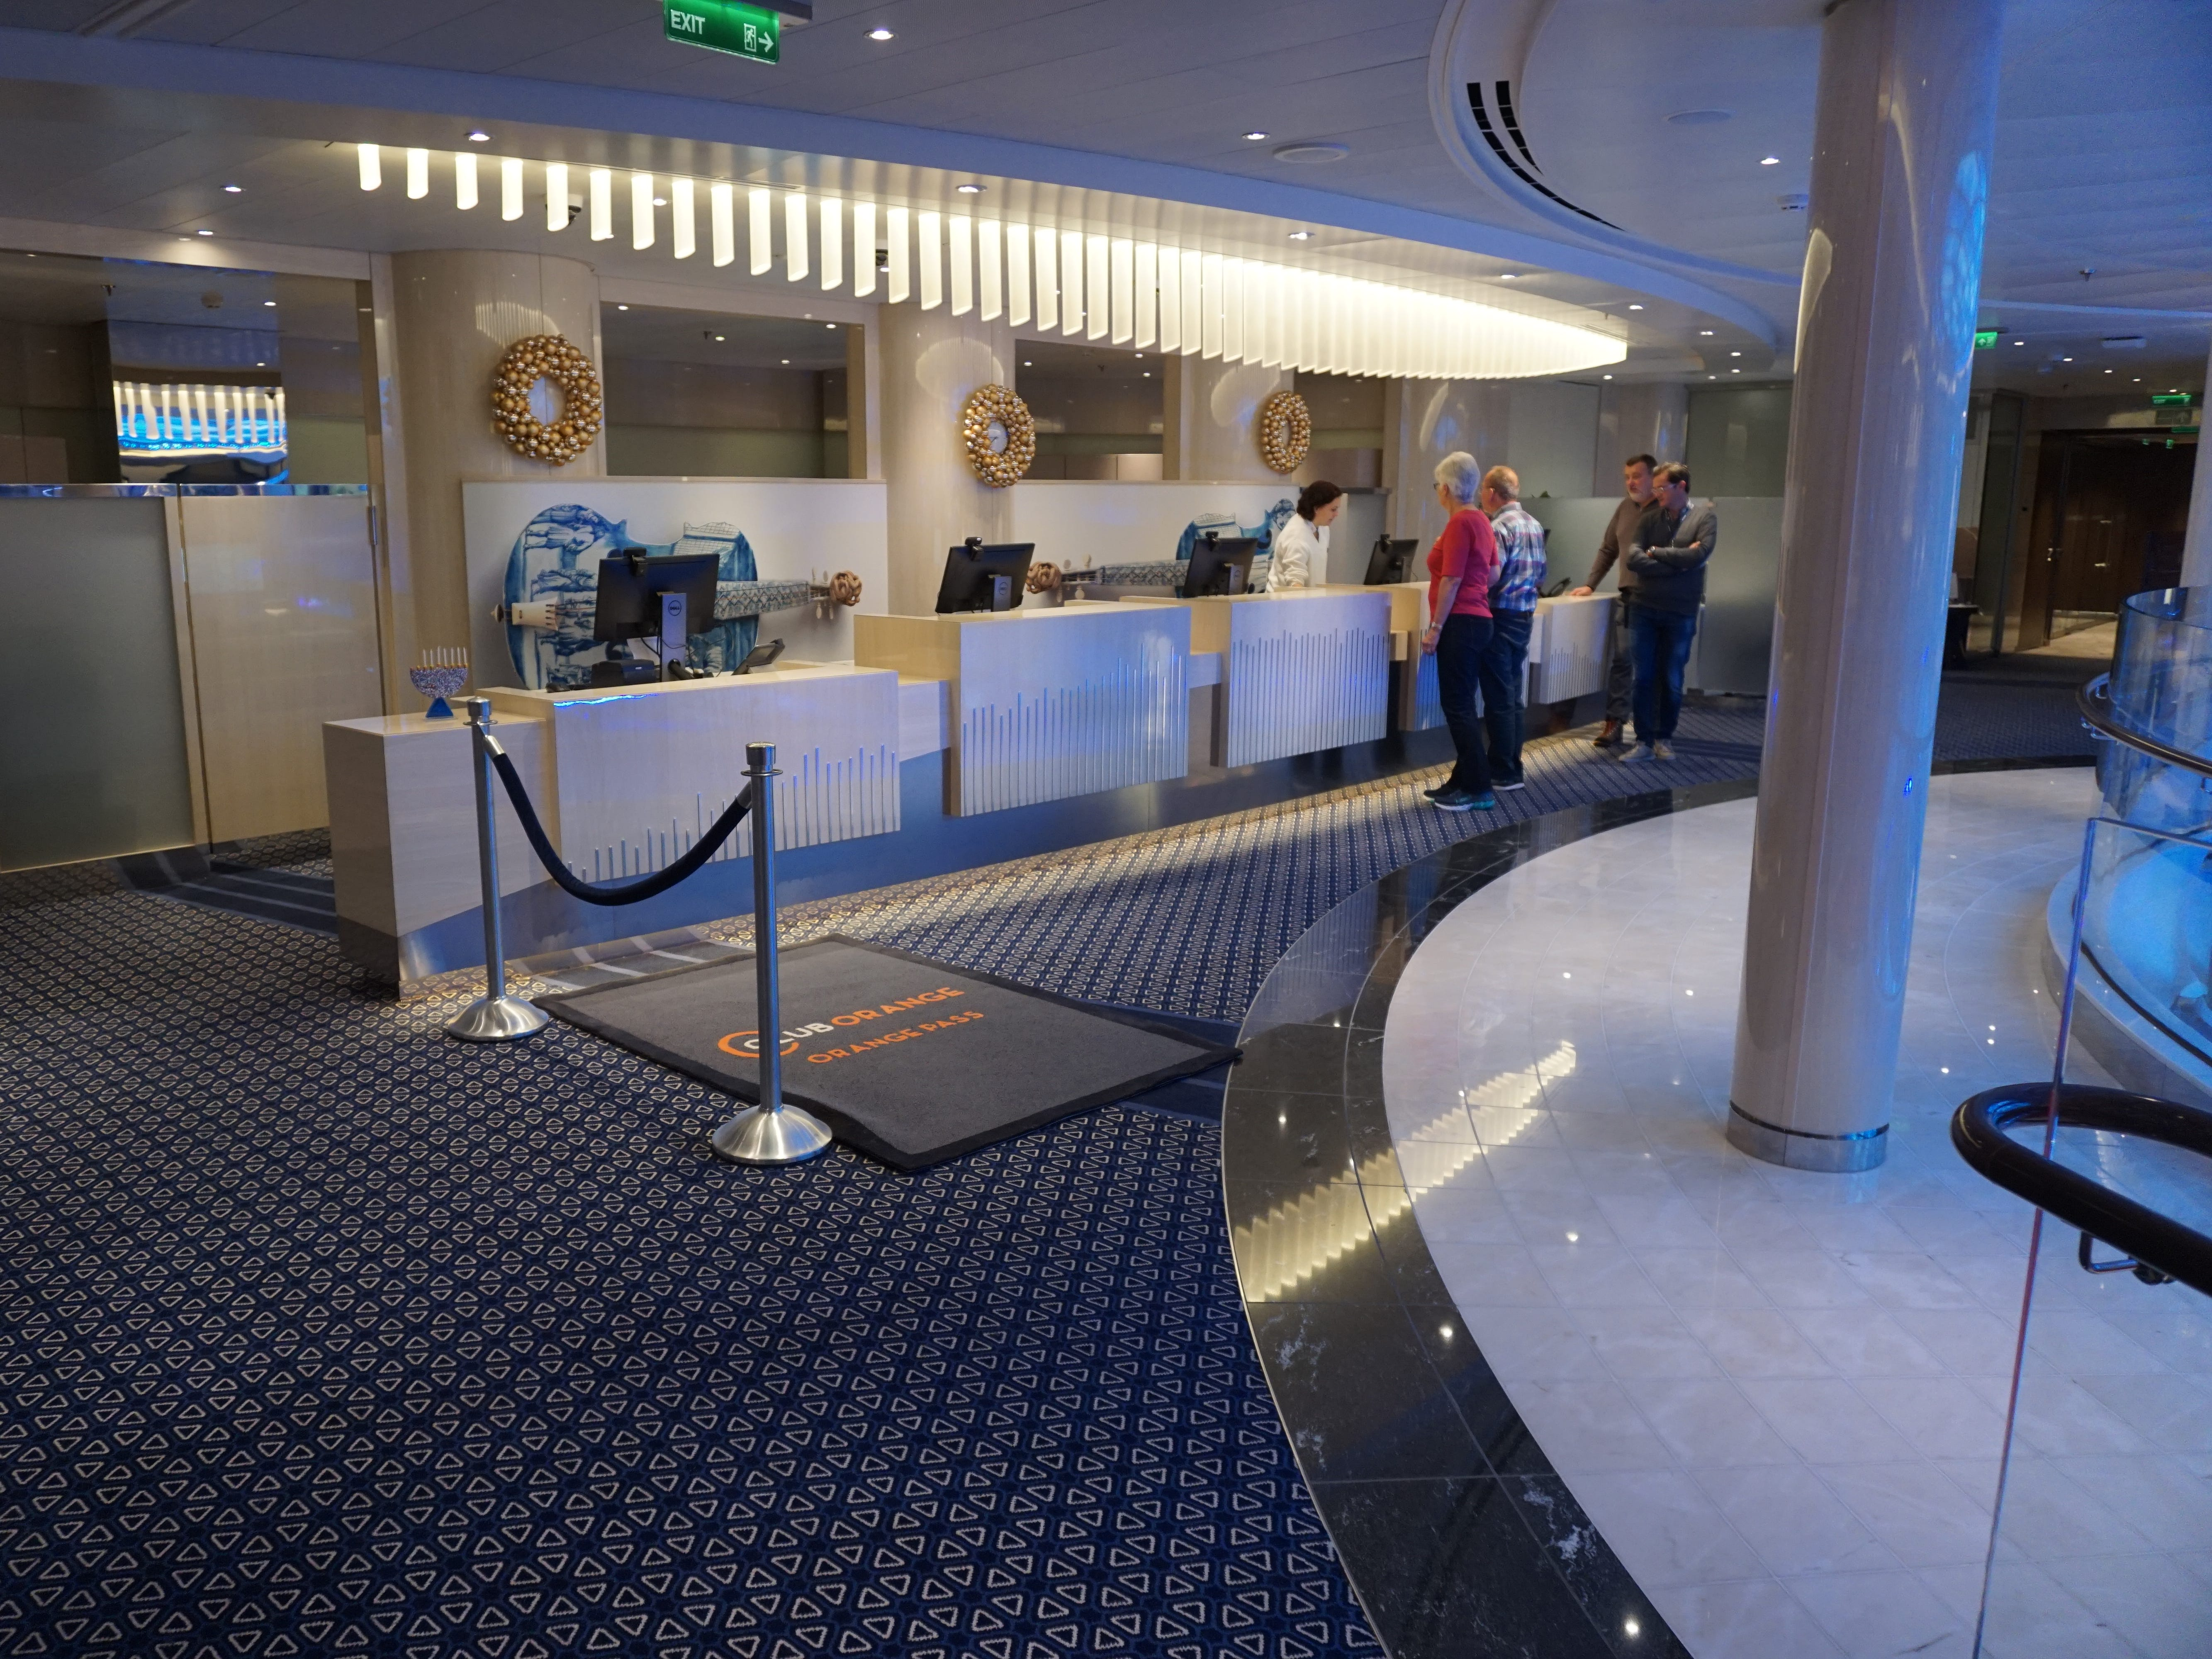 The Guest Services desk is located on the port side of the Atrium on Deck 3.